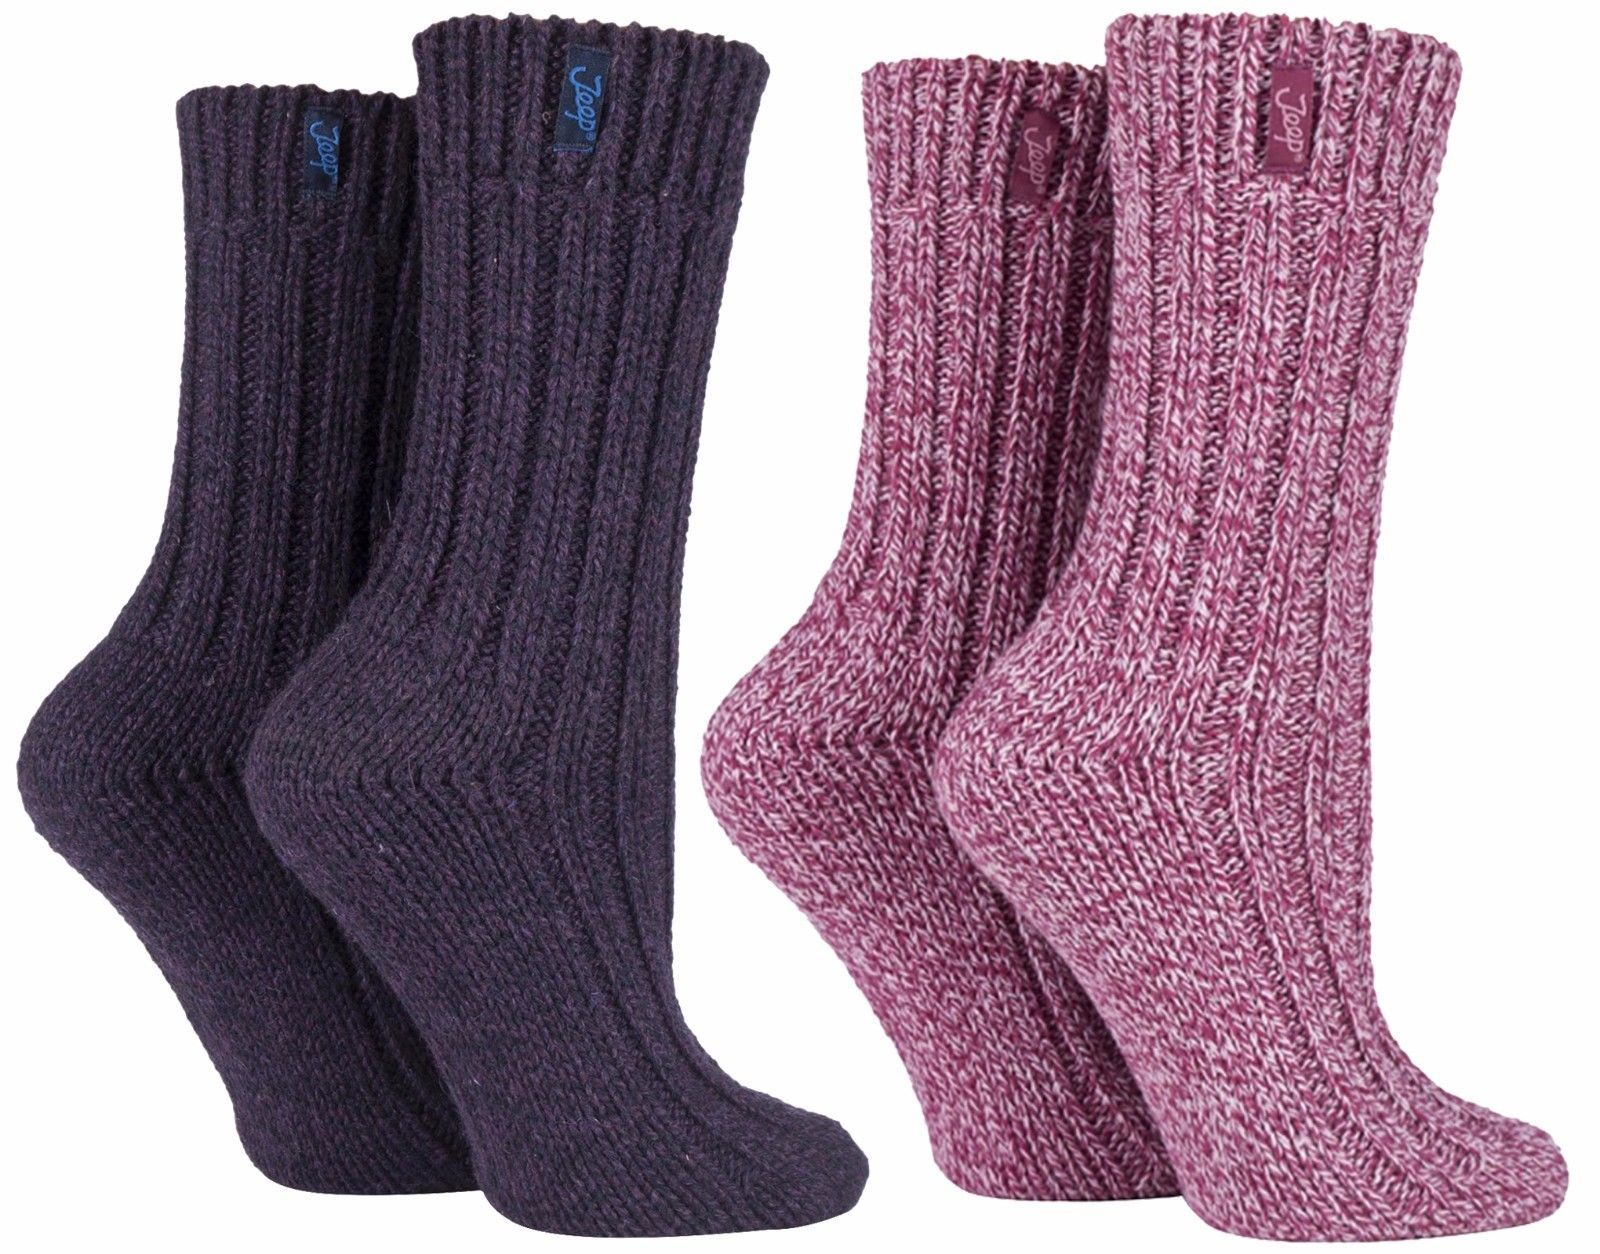 Primary image for Jeep - 2 Pack Womens Thick Pink or Purple Wool Blend Knit Hiking Boot Crew Socks